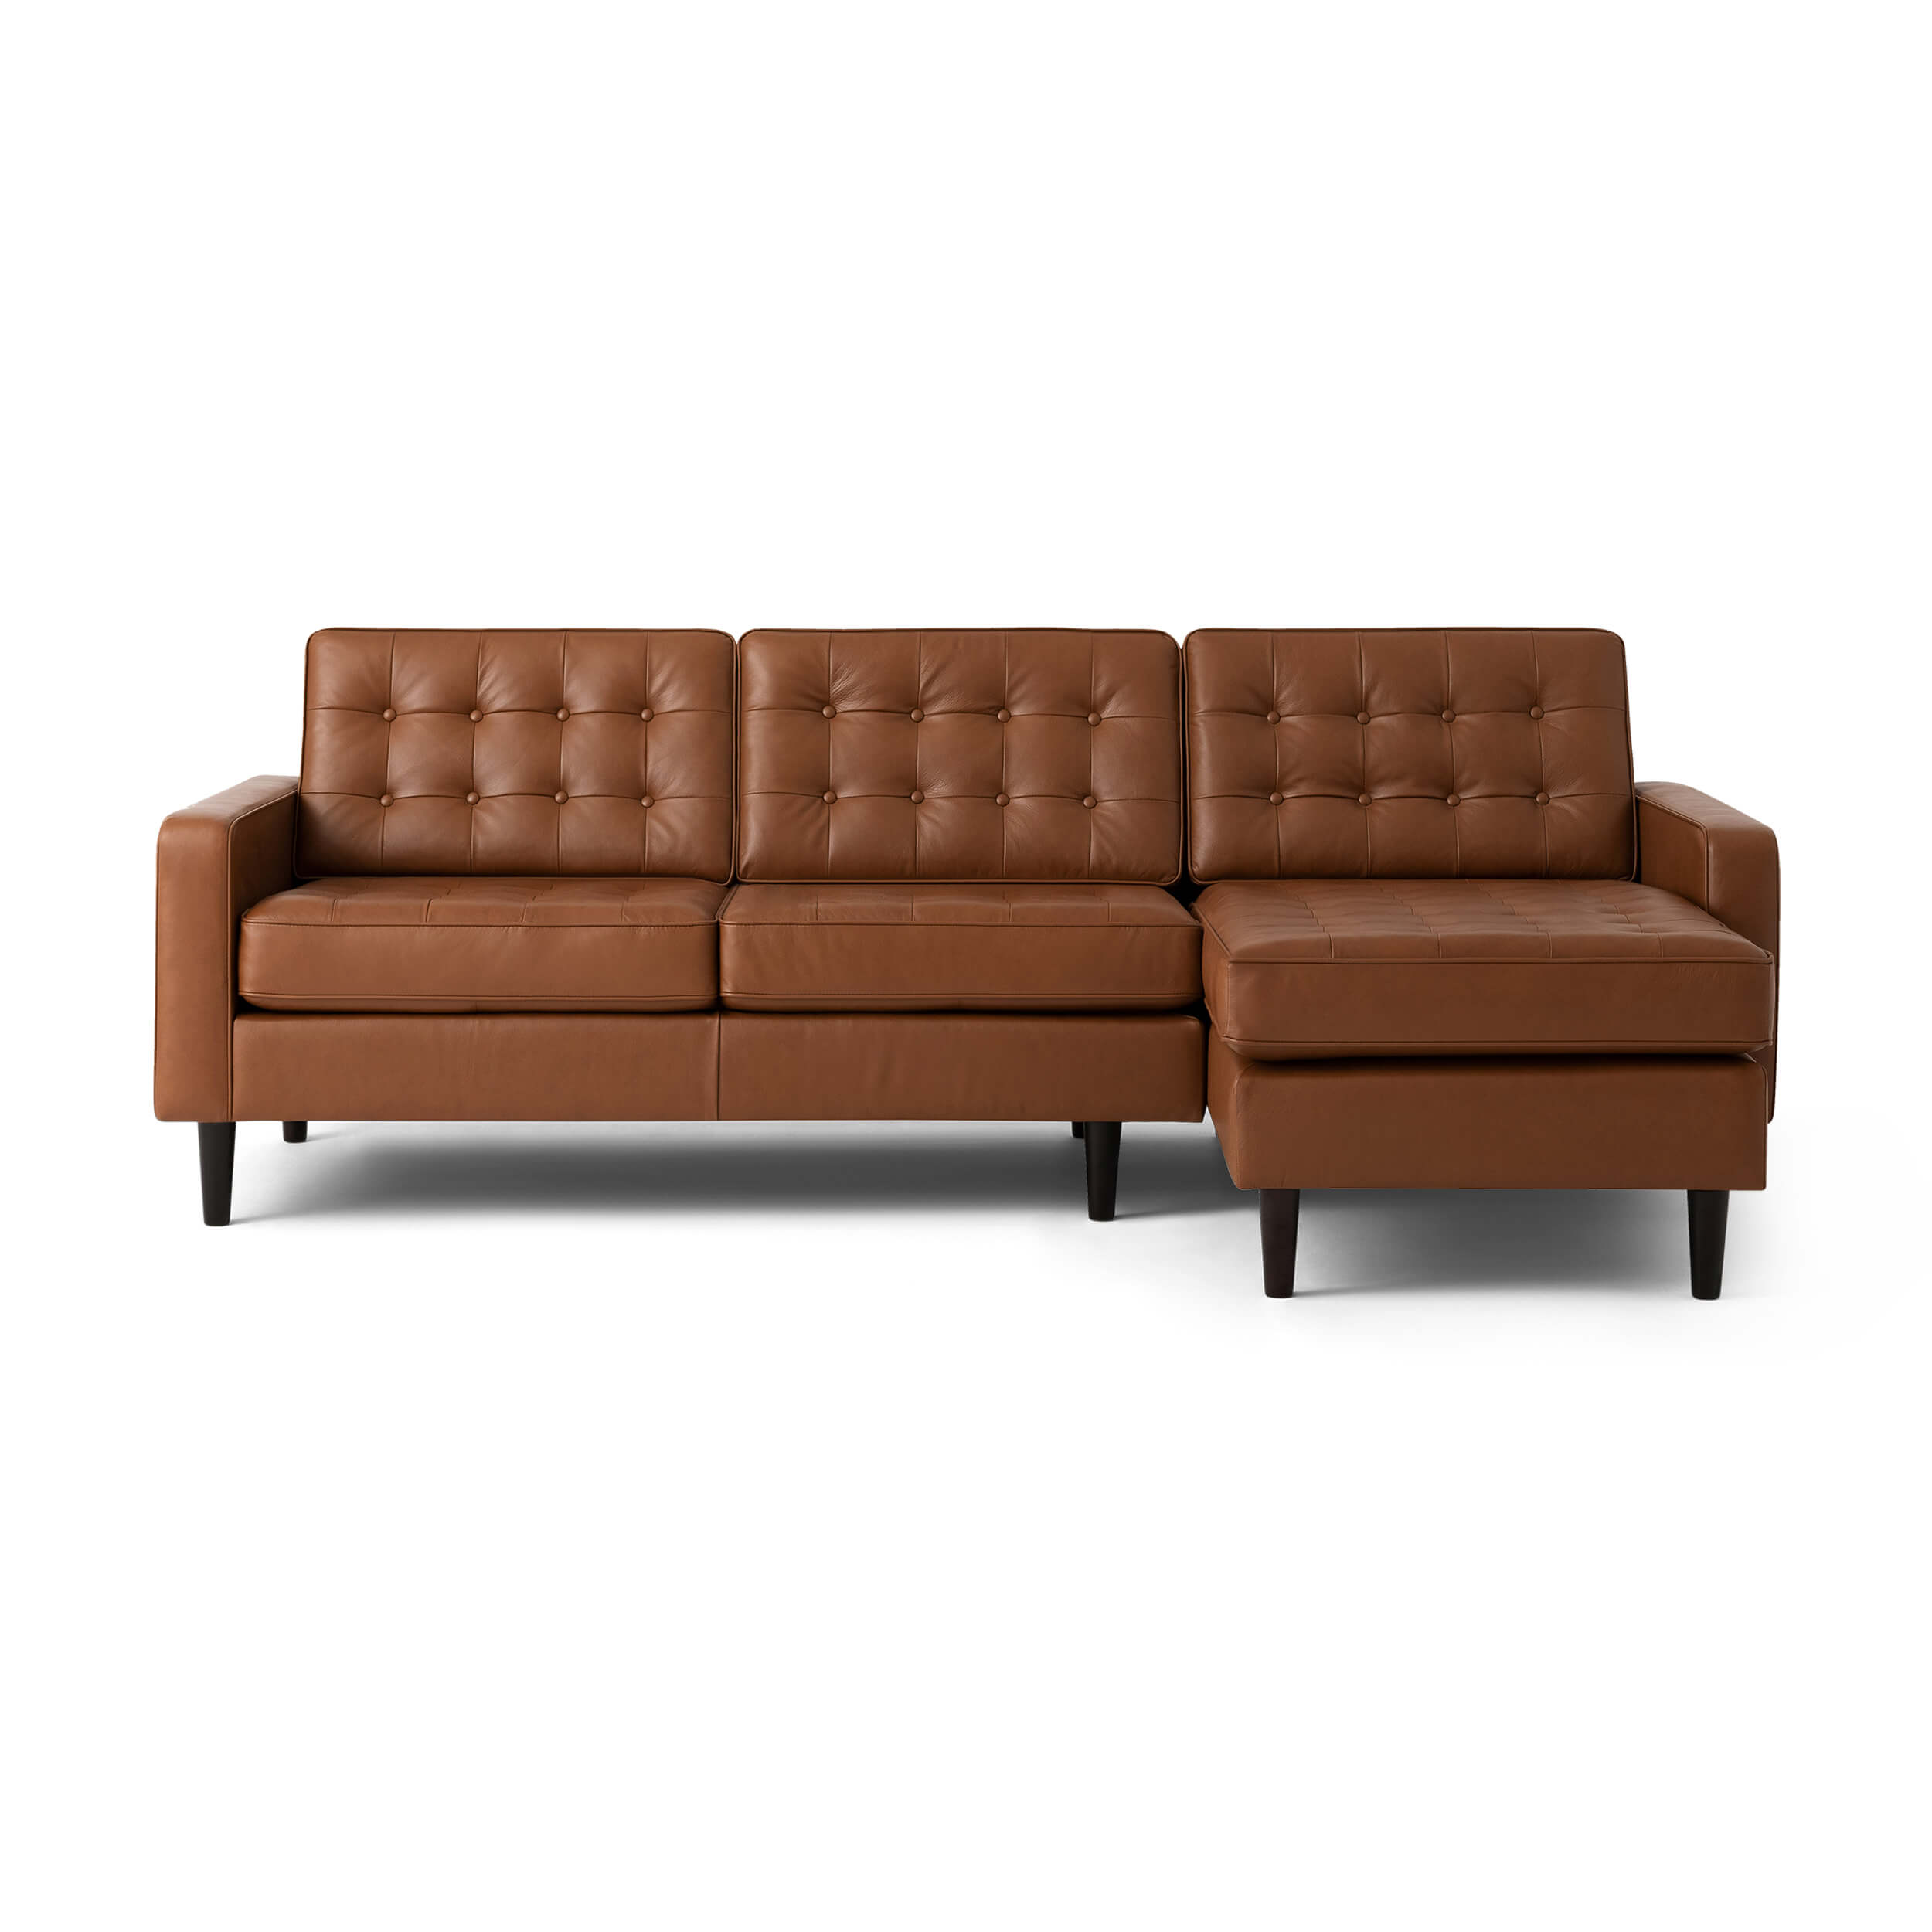 Reverie 2-Piece Sectional Sofa With Chaise - Leather